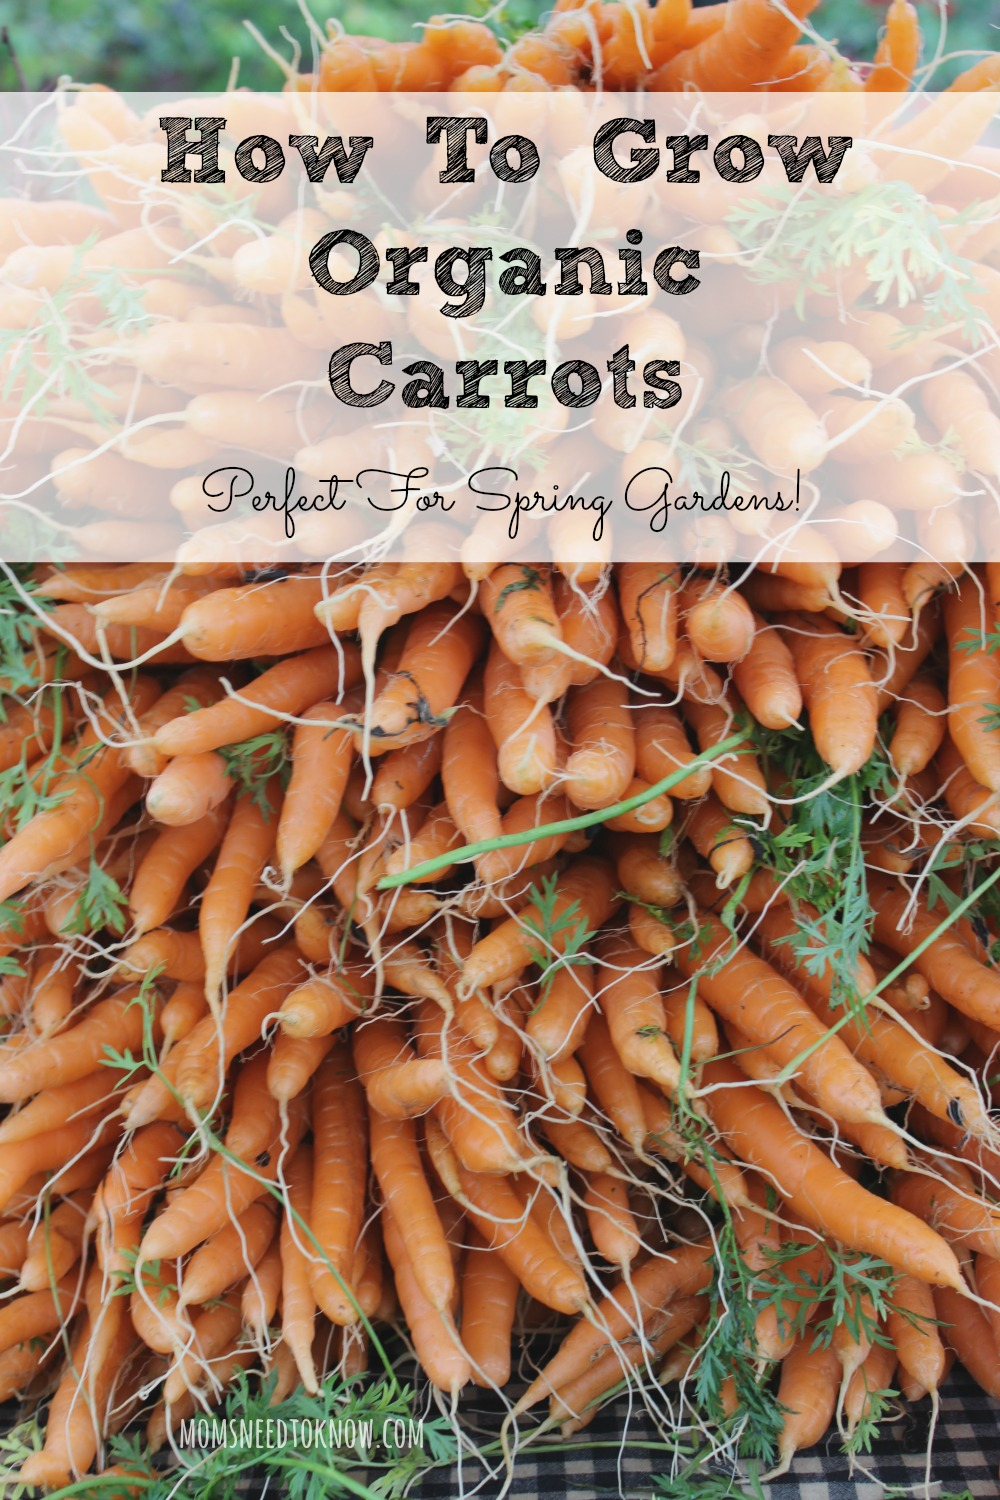 How To Grow Organic Carrots in Your Spring Garden